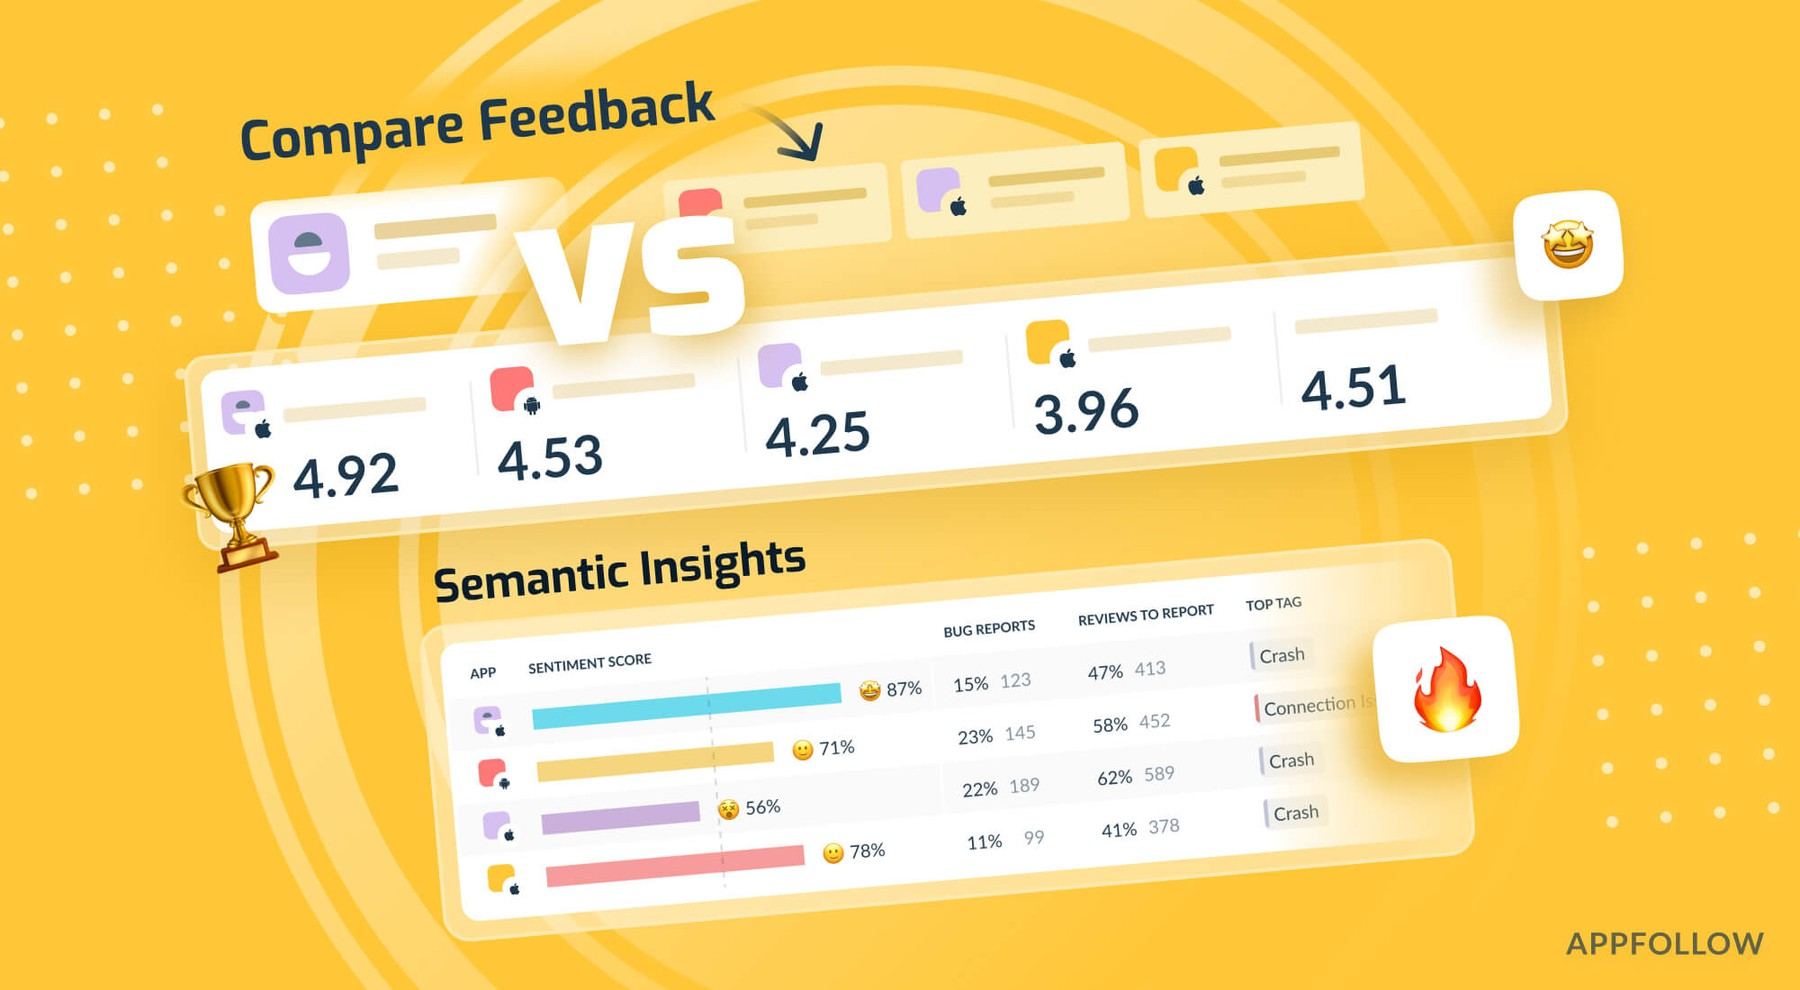 Stay one step ahead of the game with AppFollow's Competitor Analytics: our Compare Feedback tool is here!